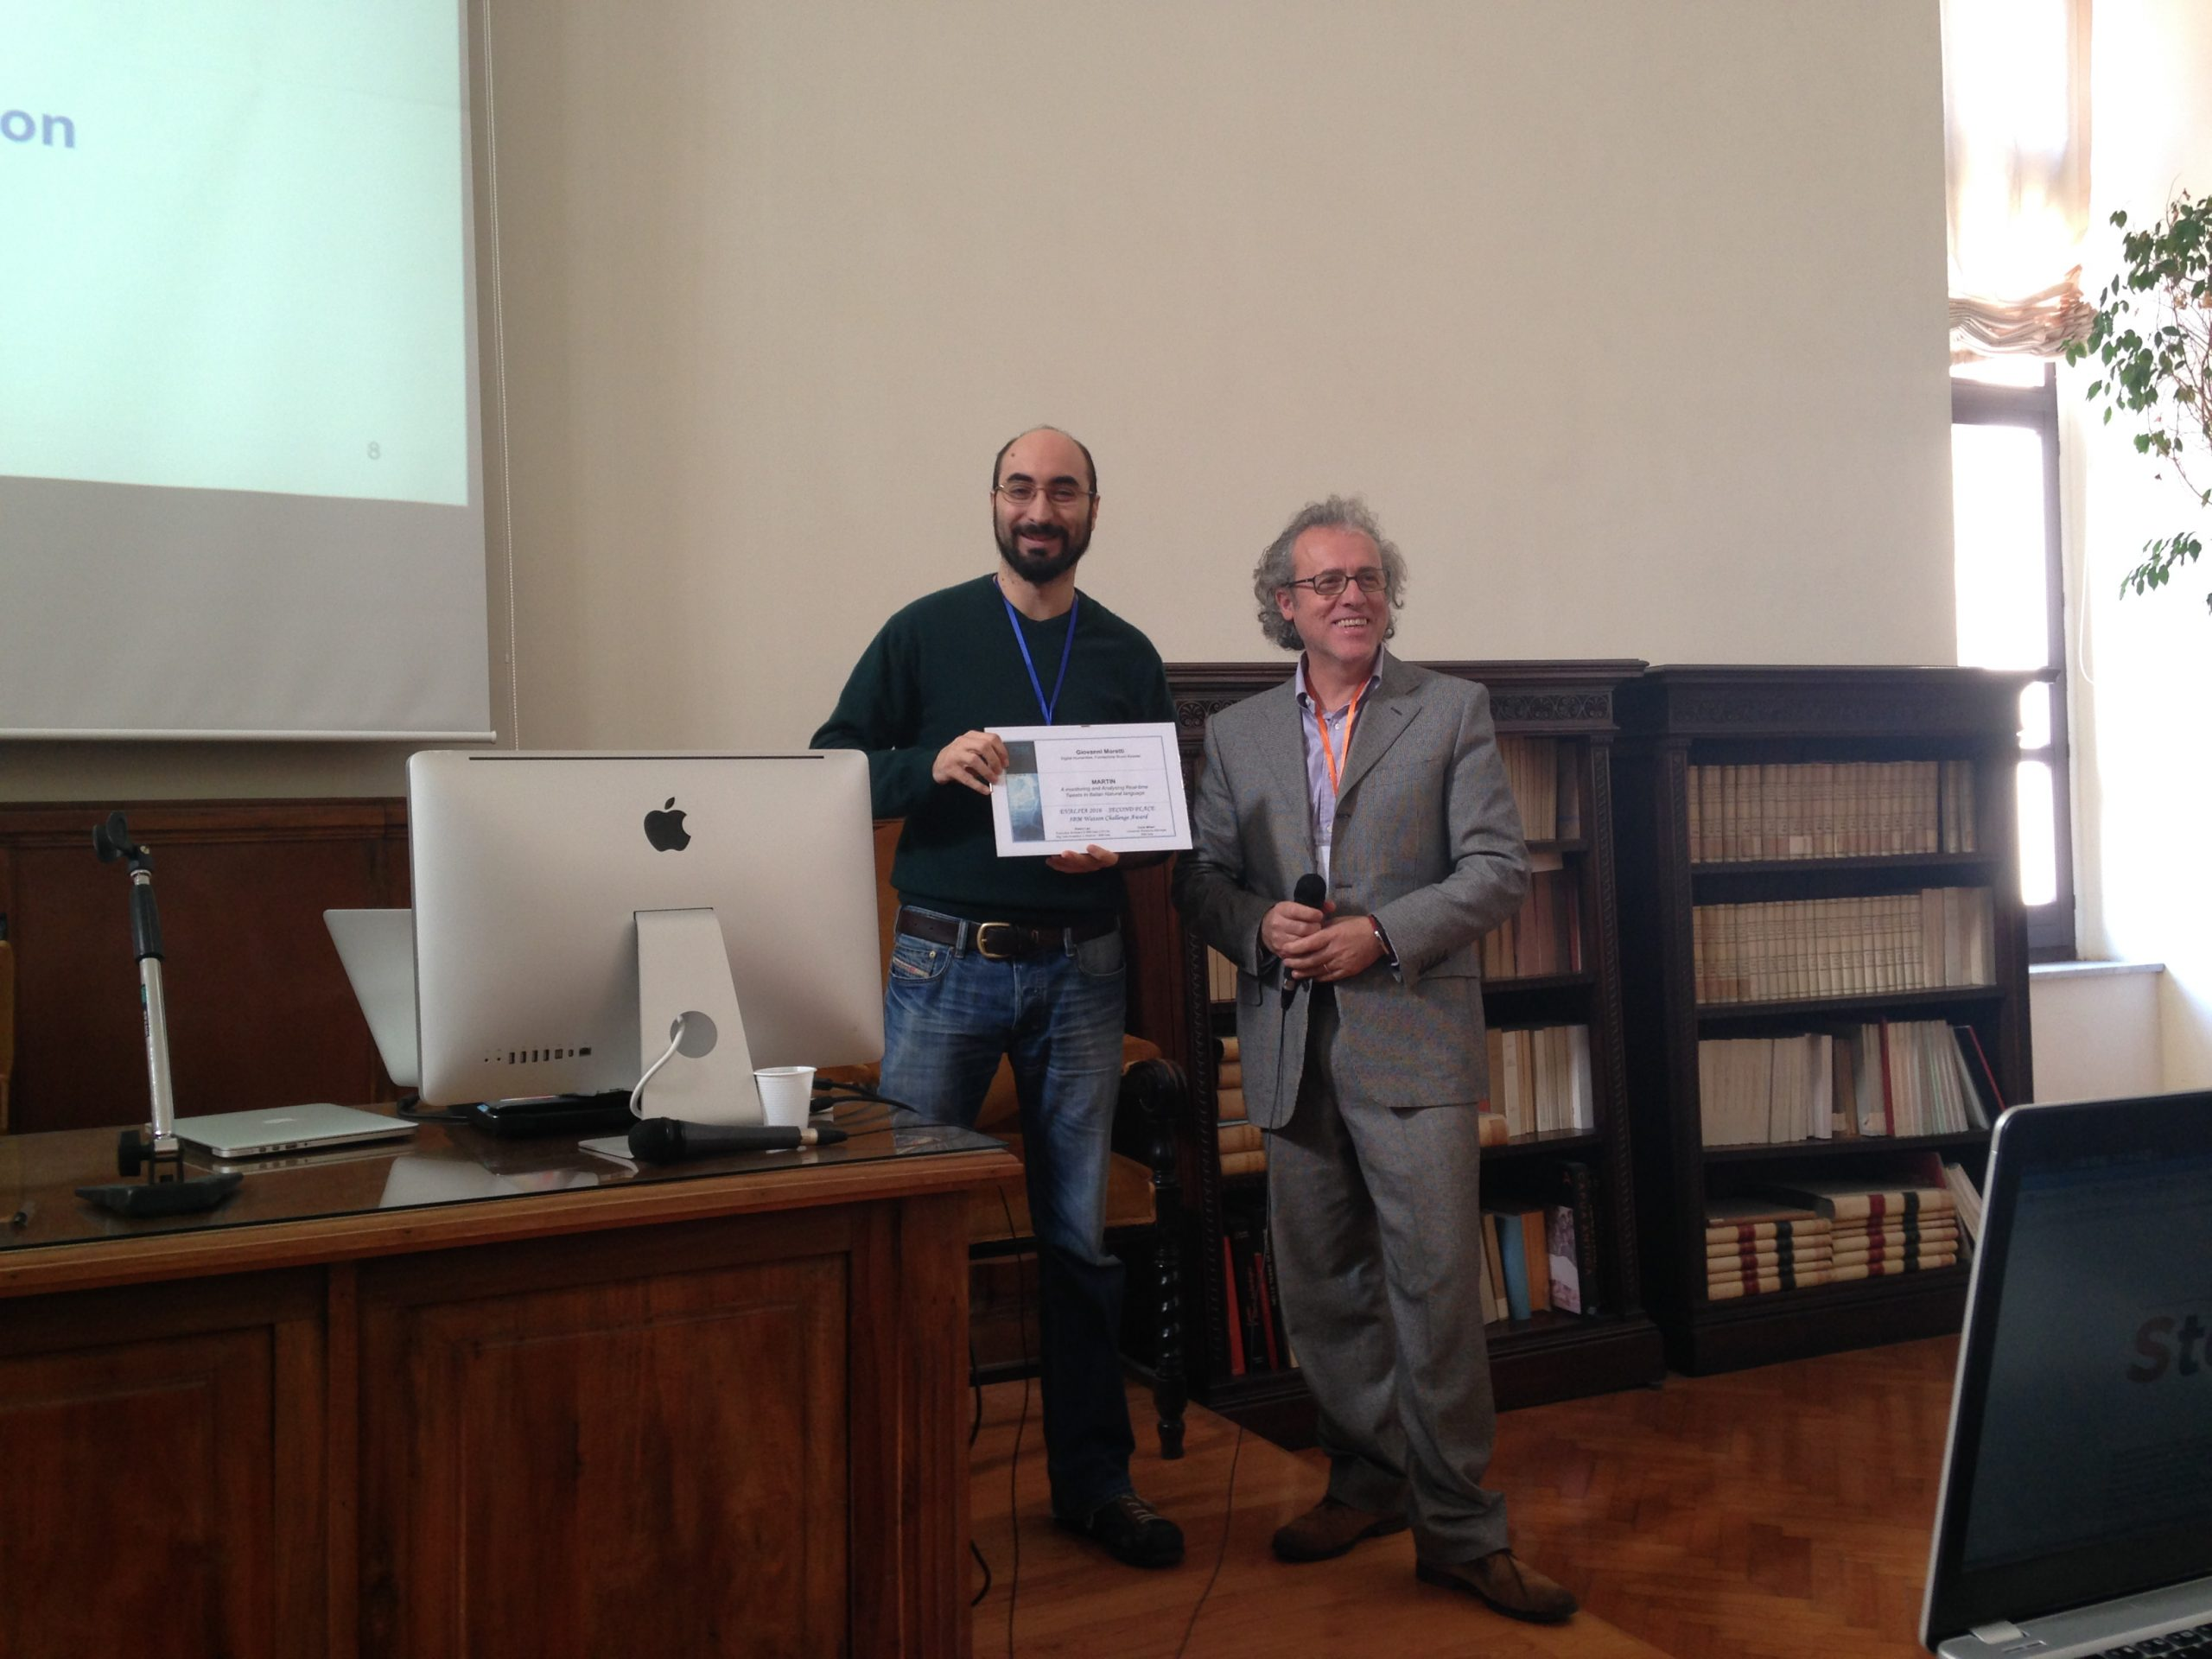 Giovanni receives the prizes from Piero Leo